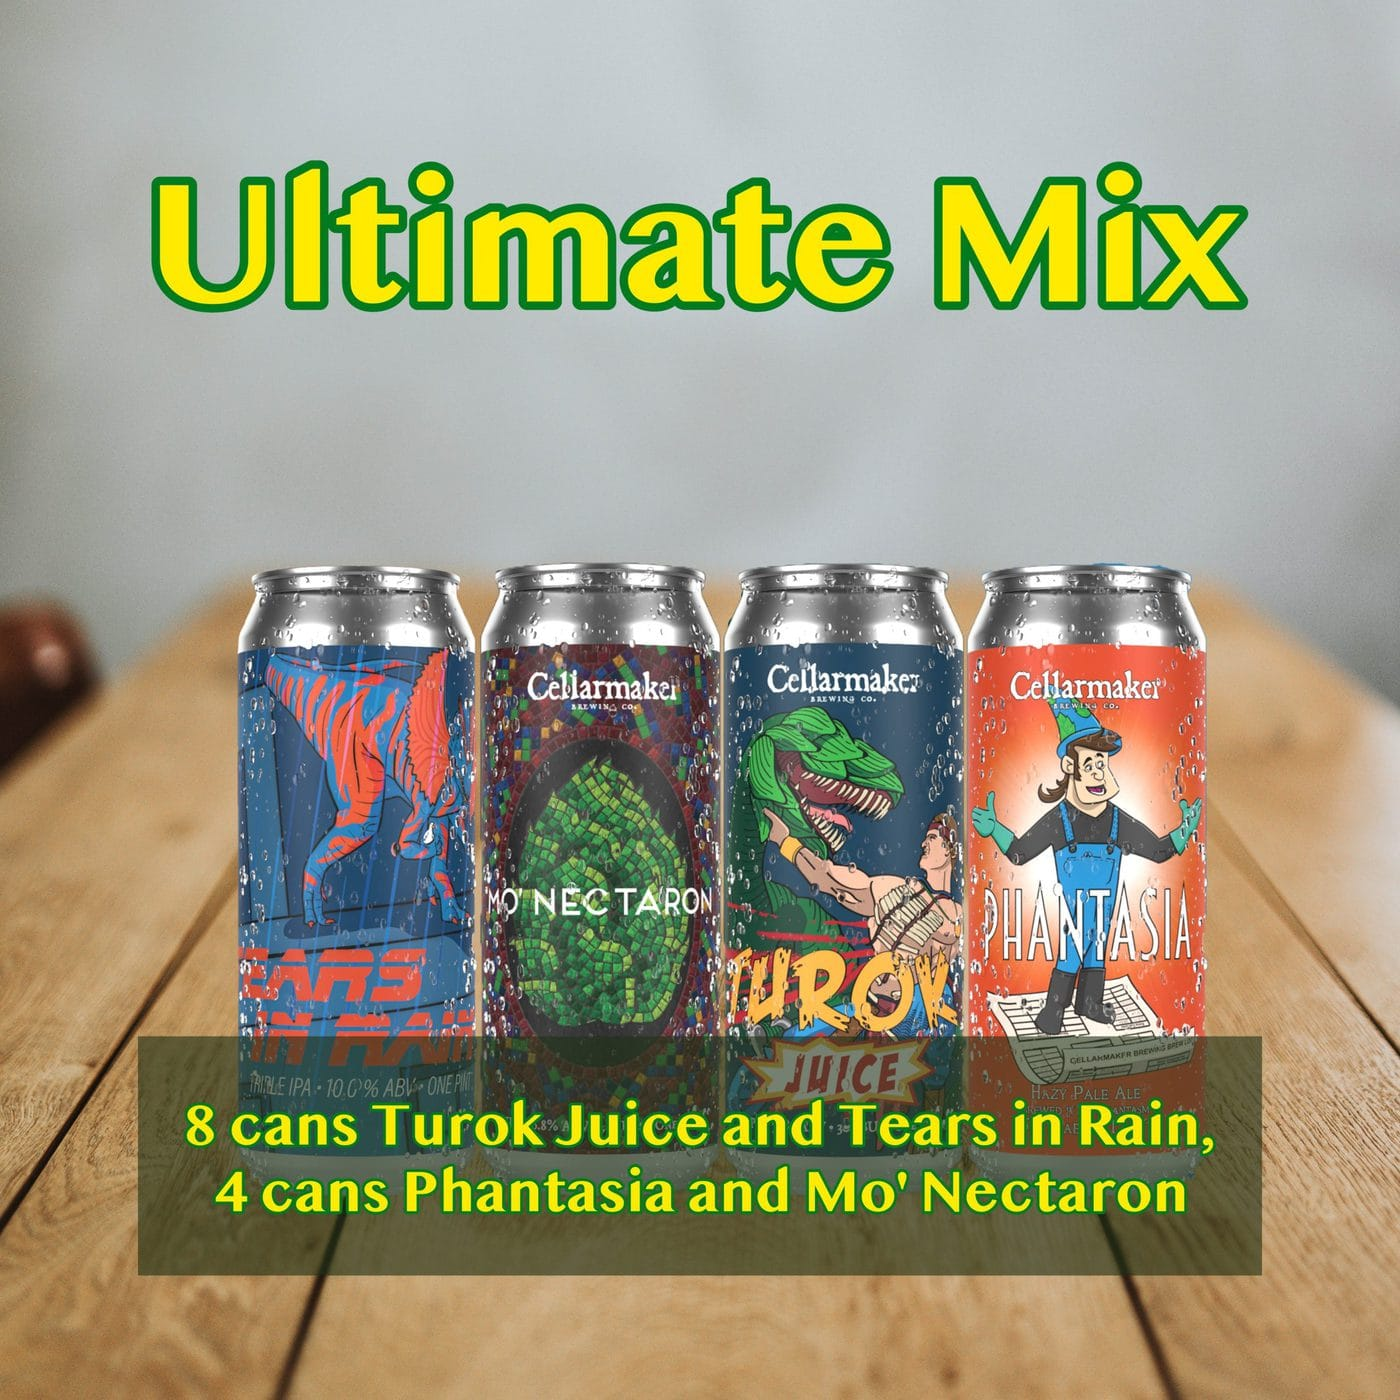 FULL CASE 24 CANS Ultimate MIX – 8 Tears In Rain HAZY TIPA, 4 Mo' Nectaron NEW HAZY IPA,  4 Phantasia New Hazy Pale Ale And 8 Turok Juice Hazy IPA – Shipping Out Tuesday 3/2 For Next Day Delivery*